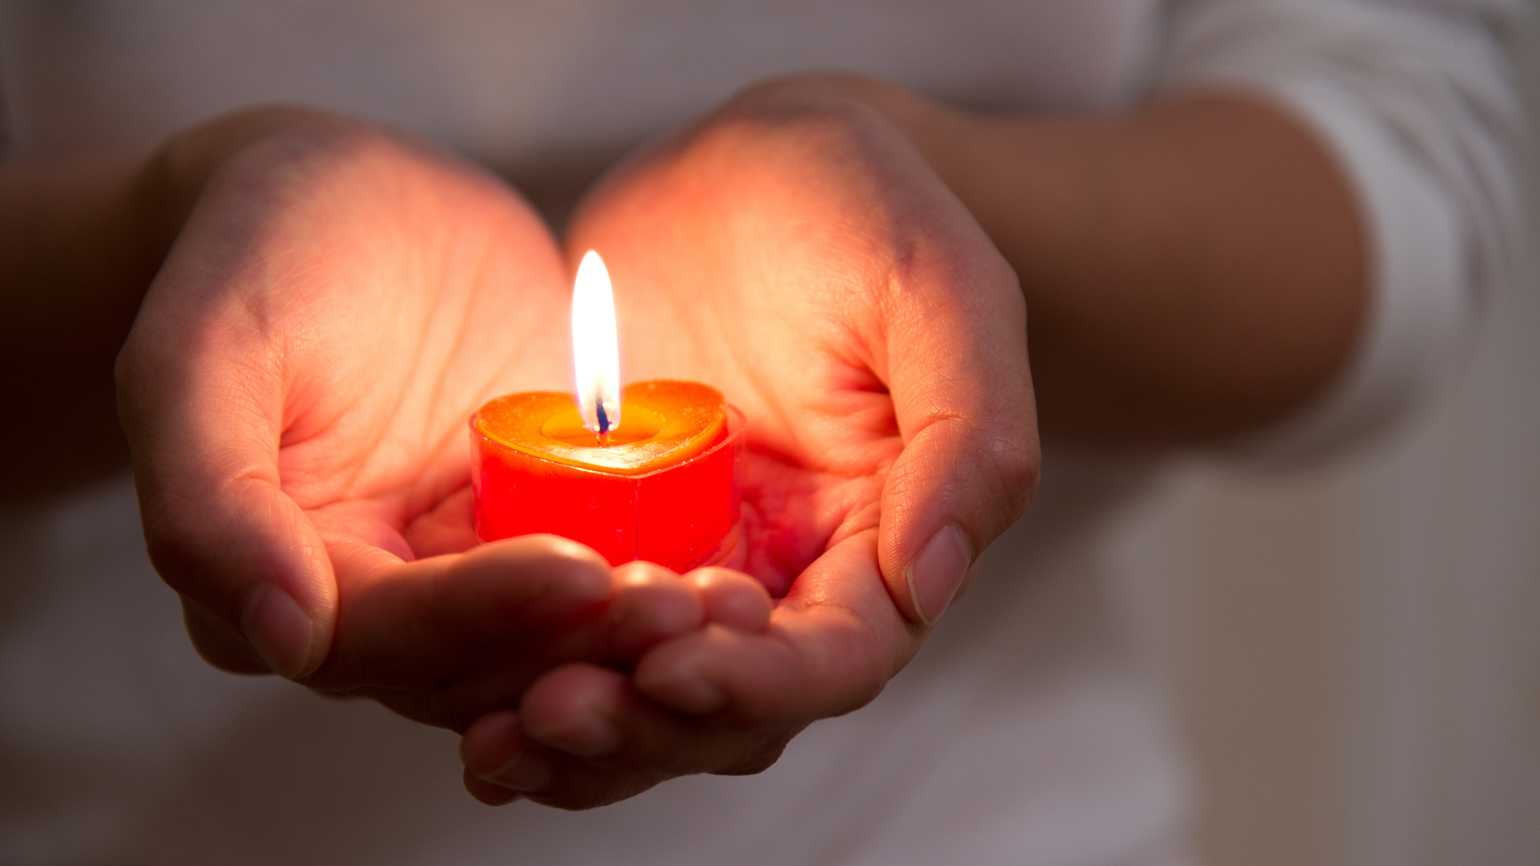 A woman's hands holding a a lit red candle.